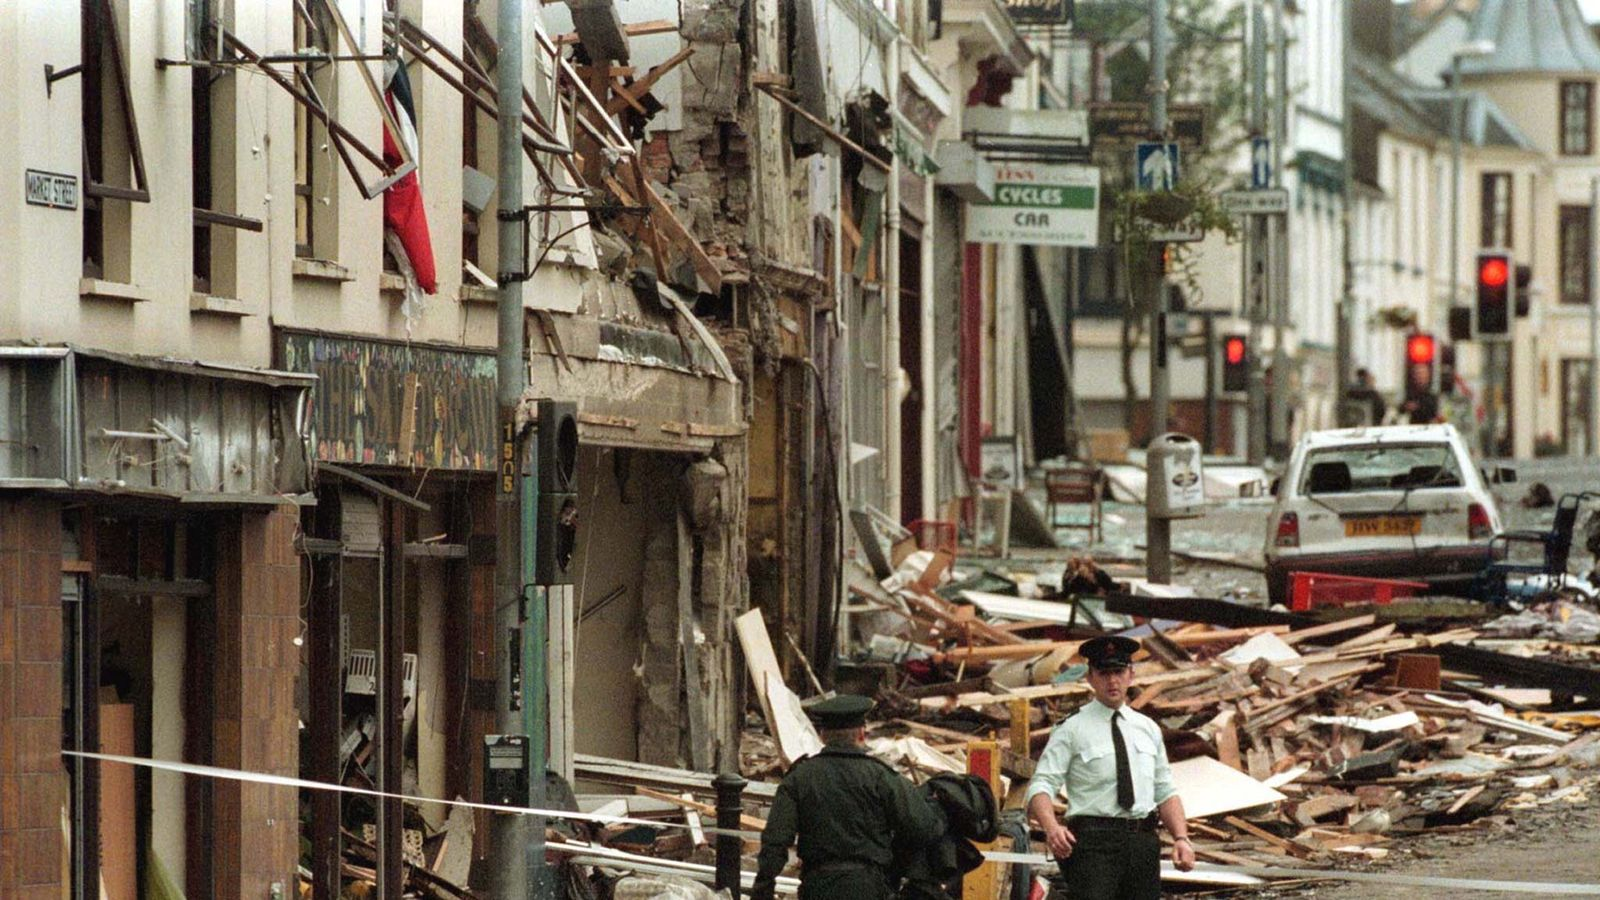 'Real prospect' the Omagh bombing could have been prevented, judge rules